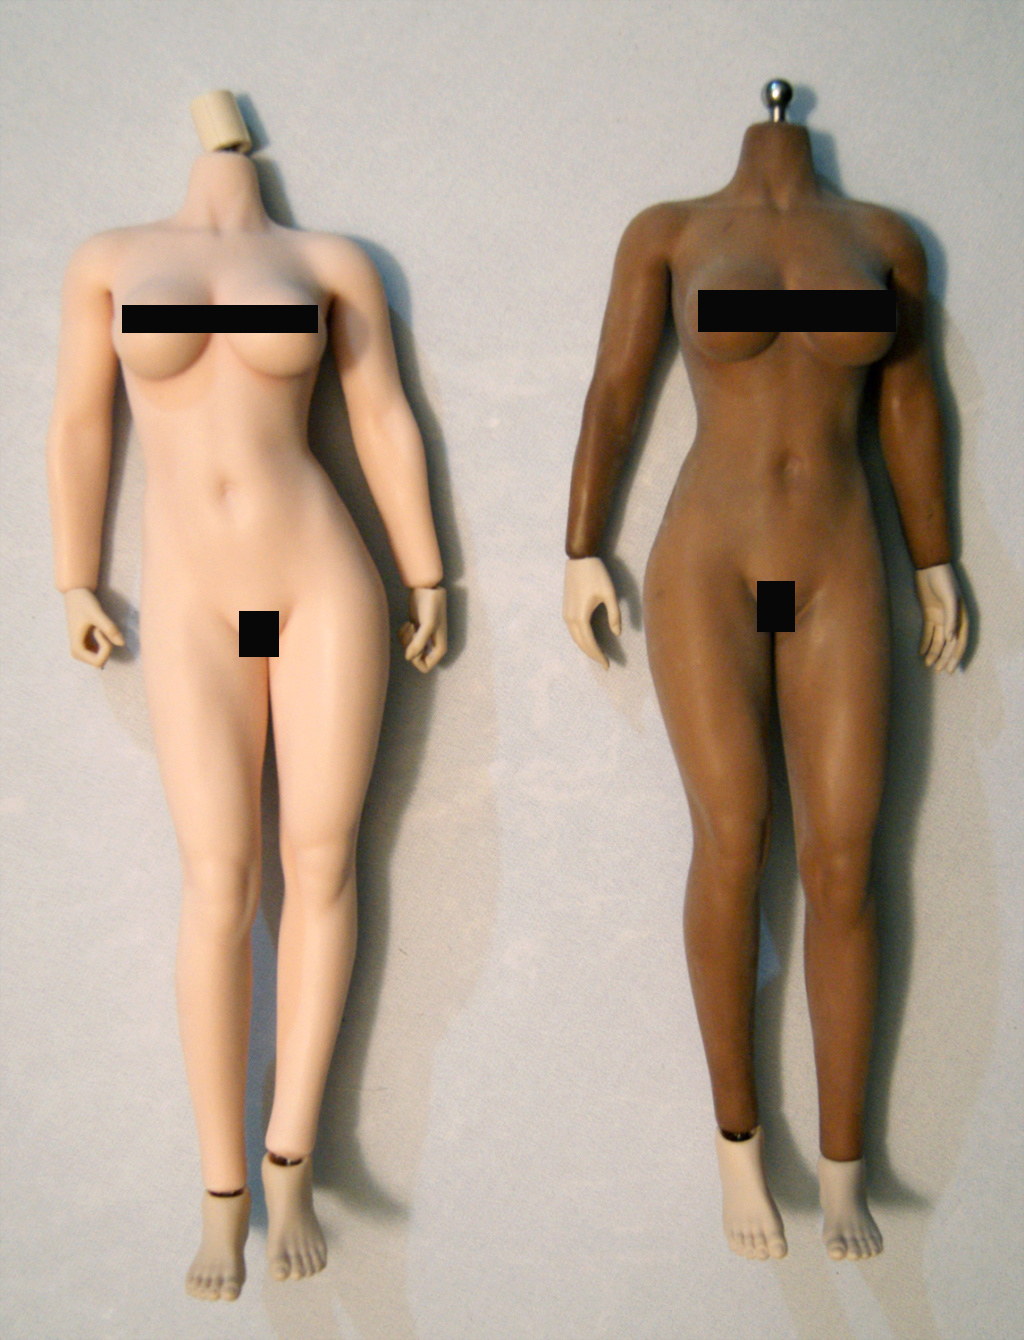 Dyeing Phicen figures with Rit Dye (NSFW) Compar11